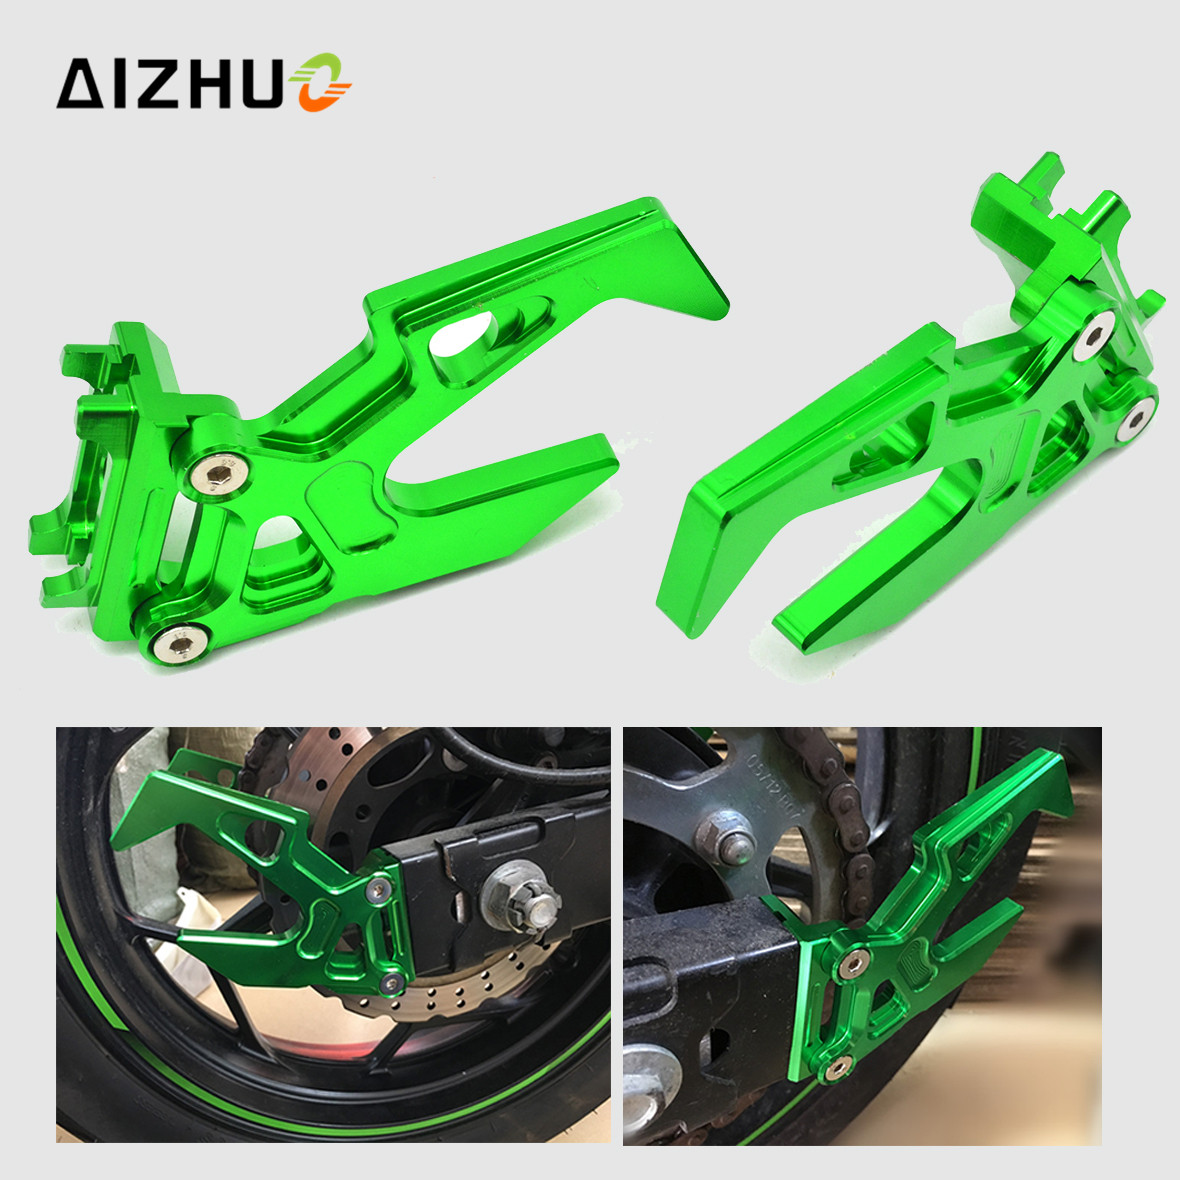 For KAWASAKI Motorcycle Chain Adjuster Tensioner Autobike Chain Regulator ninja300 ninja 300 2013 2015 2016 2014 for kawasaki motorcycle chain adjuster tensioner autobike chain regulator ninja300 ninja 300 2013 2015 2016 2014